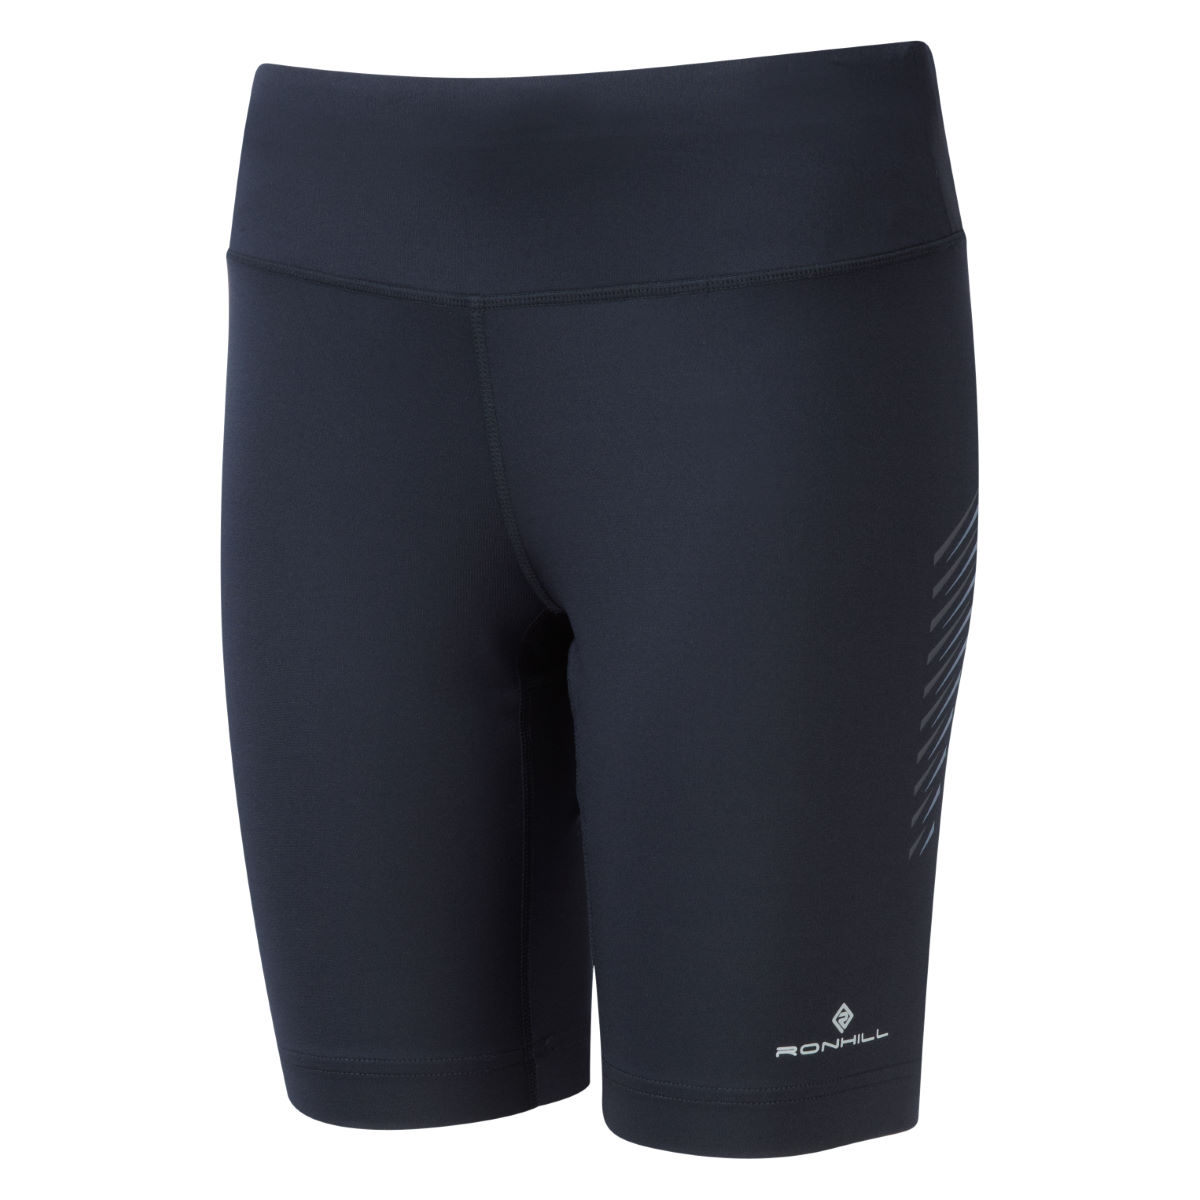 Ronhill Women's Stretch Short (AW16) - Extra Large All Black